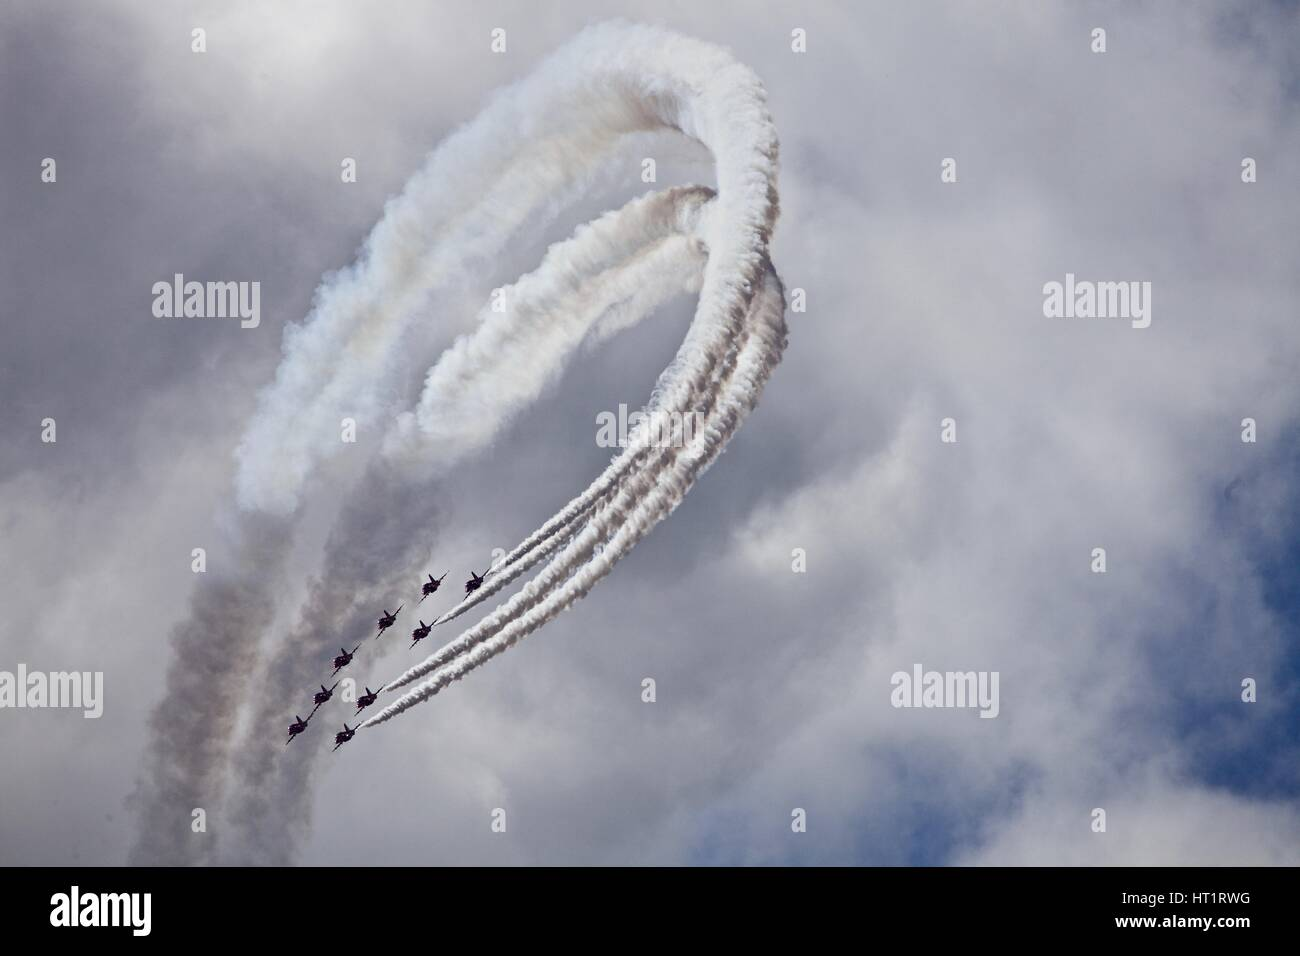 The Red Arrows RAF Royal Air Force Aerobatic Team in flight during a display at Bournemouth Air Festival 2015 - Stock Image